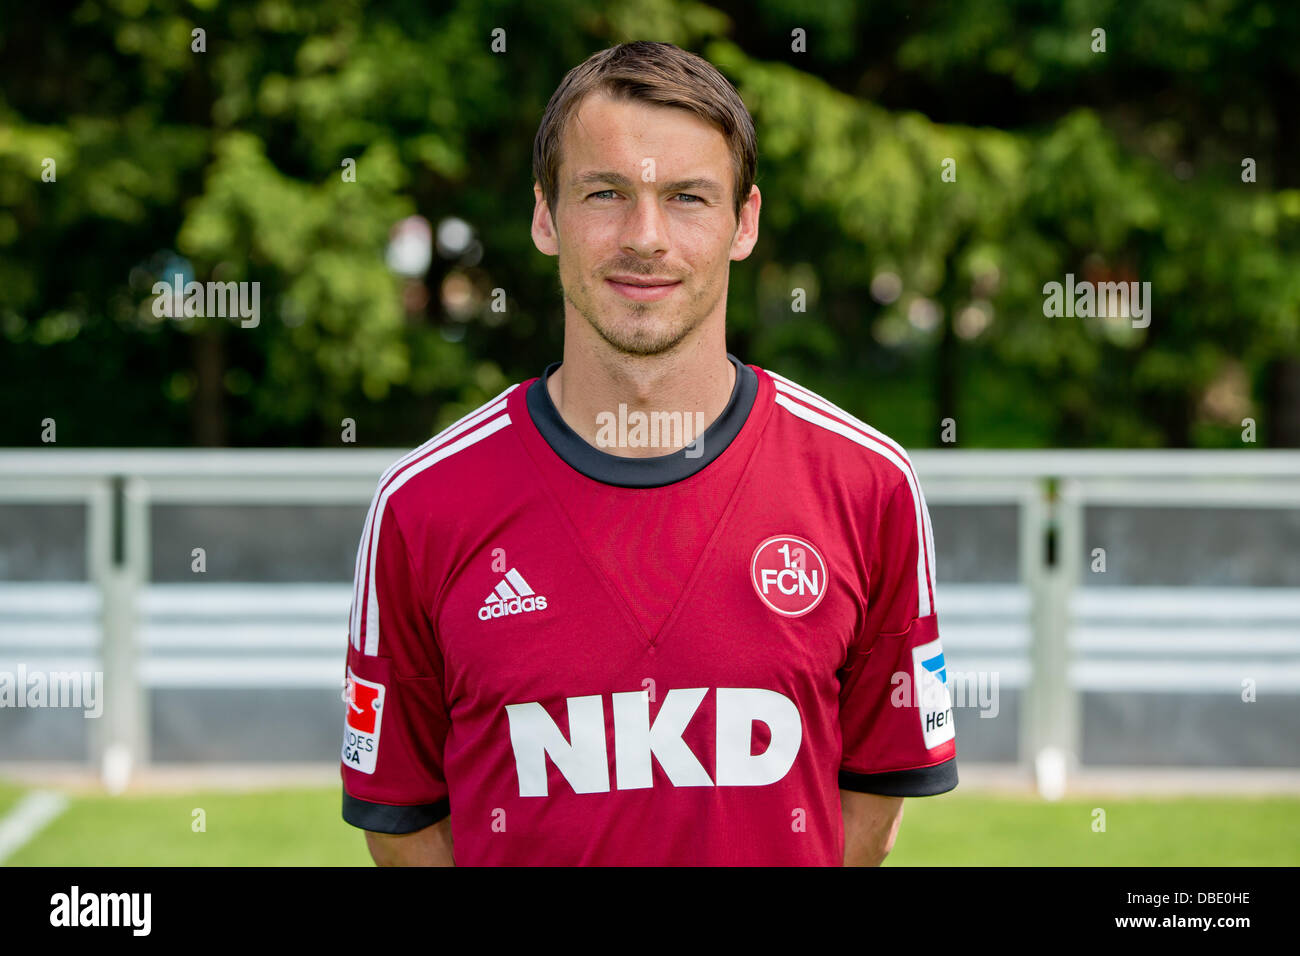 Player Markus Feulner of German Bundesliga club 1. FC Nurnberg during the official photocall for the season 2013 - Stock Image